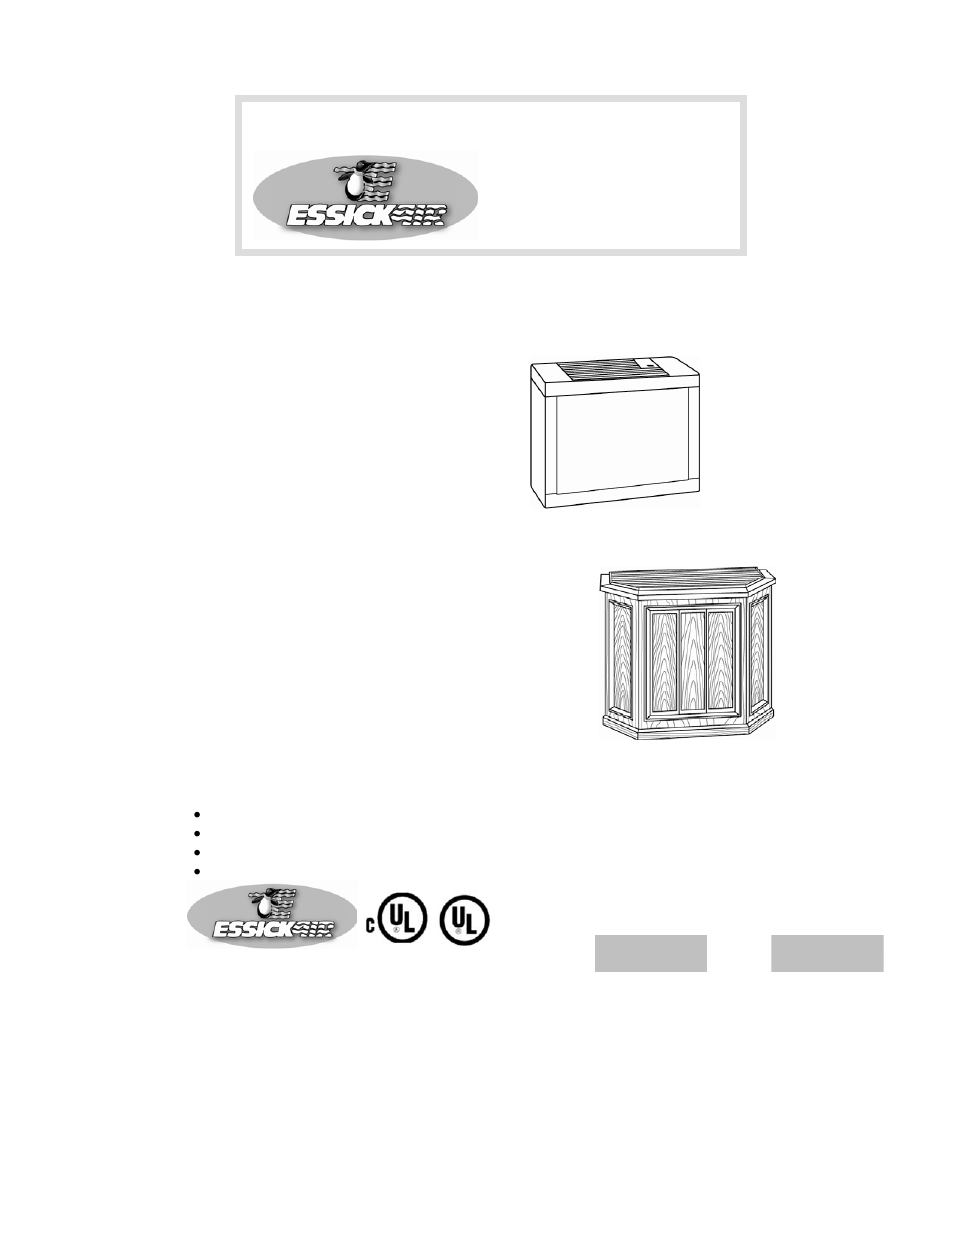 Essick Air 696 400 User Manual | 13 pages | Also for: 4D7 800, 4D7 300, 697  500, 447 302